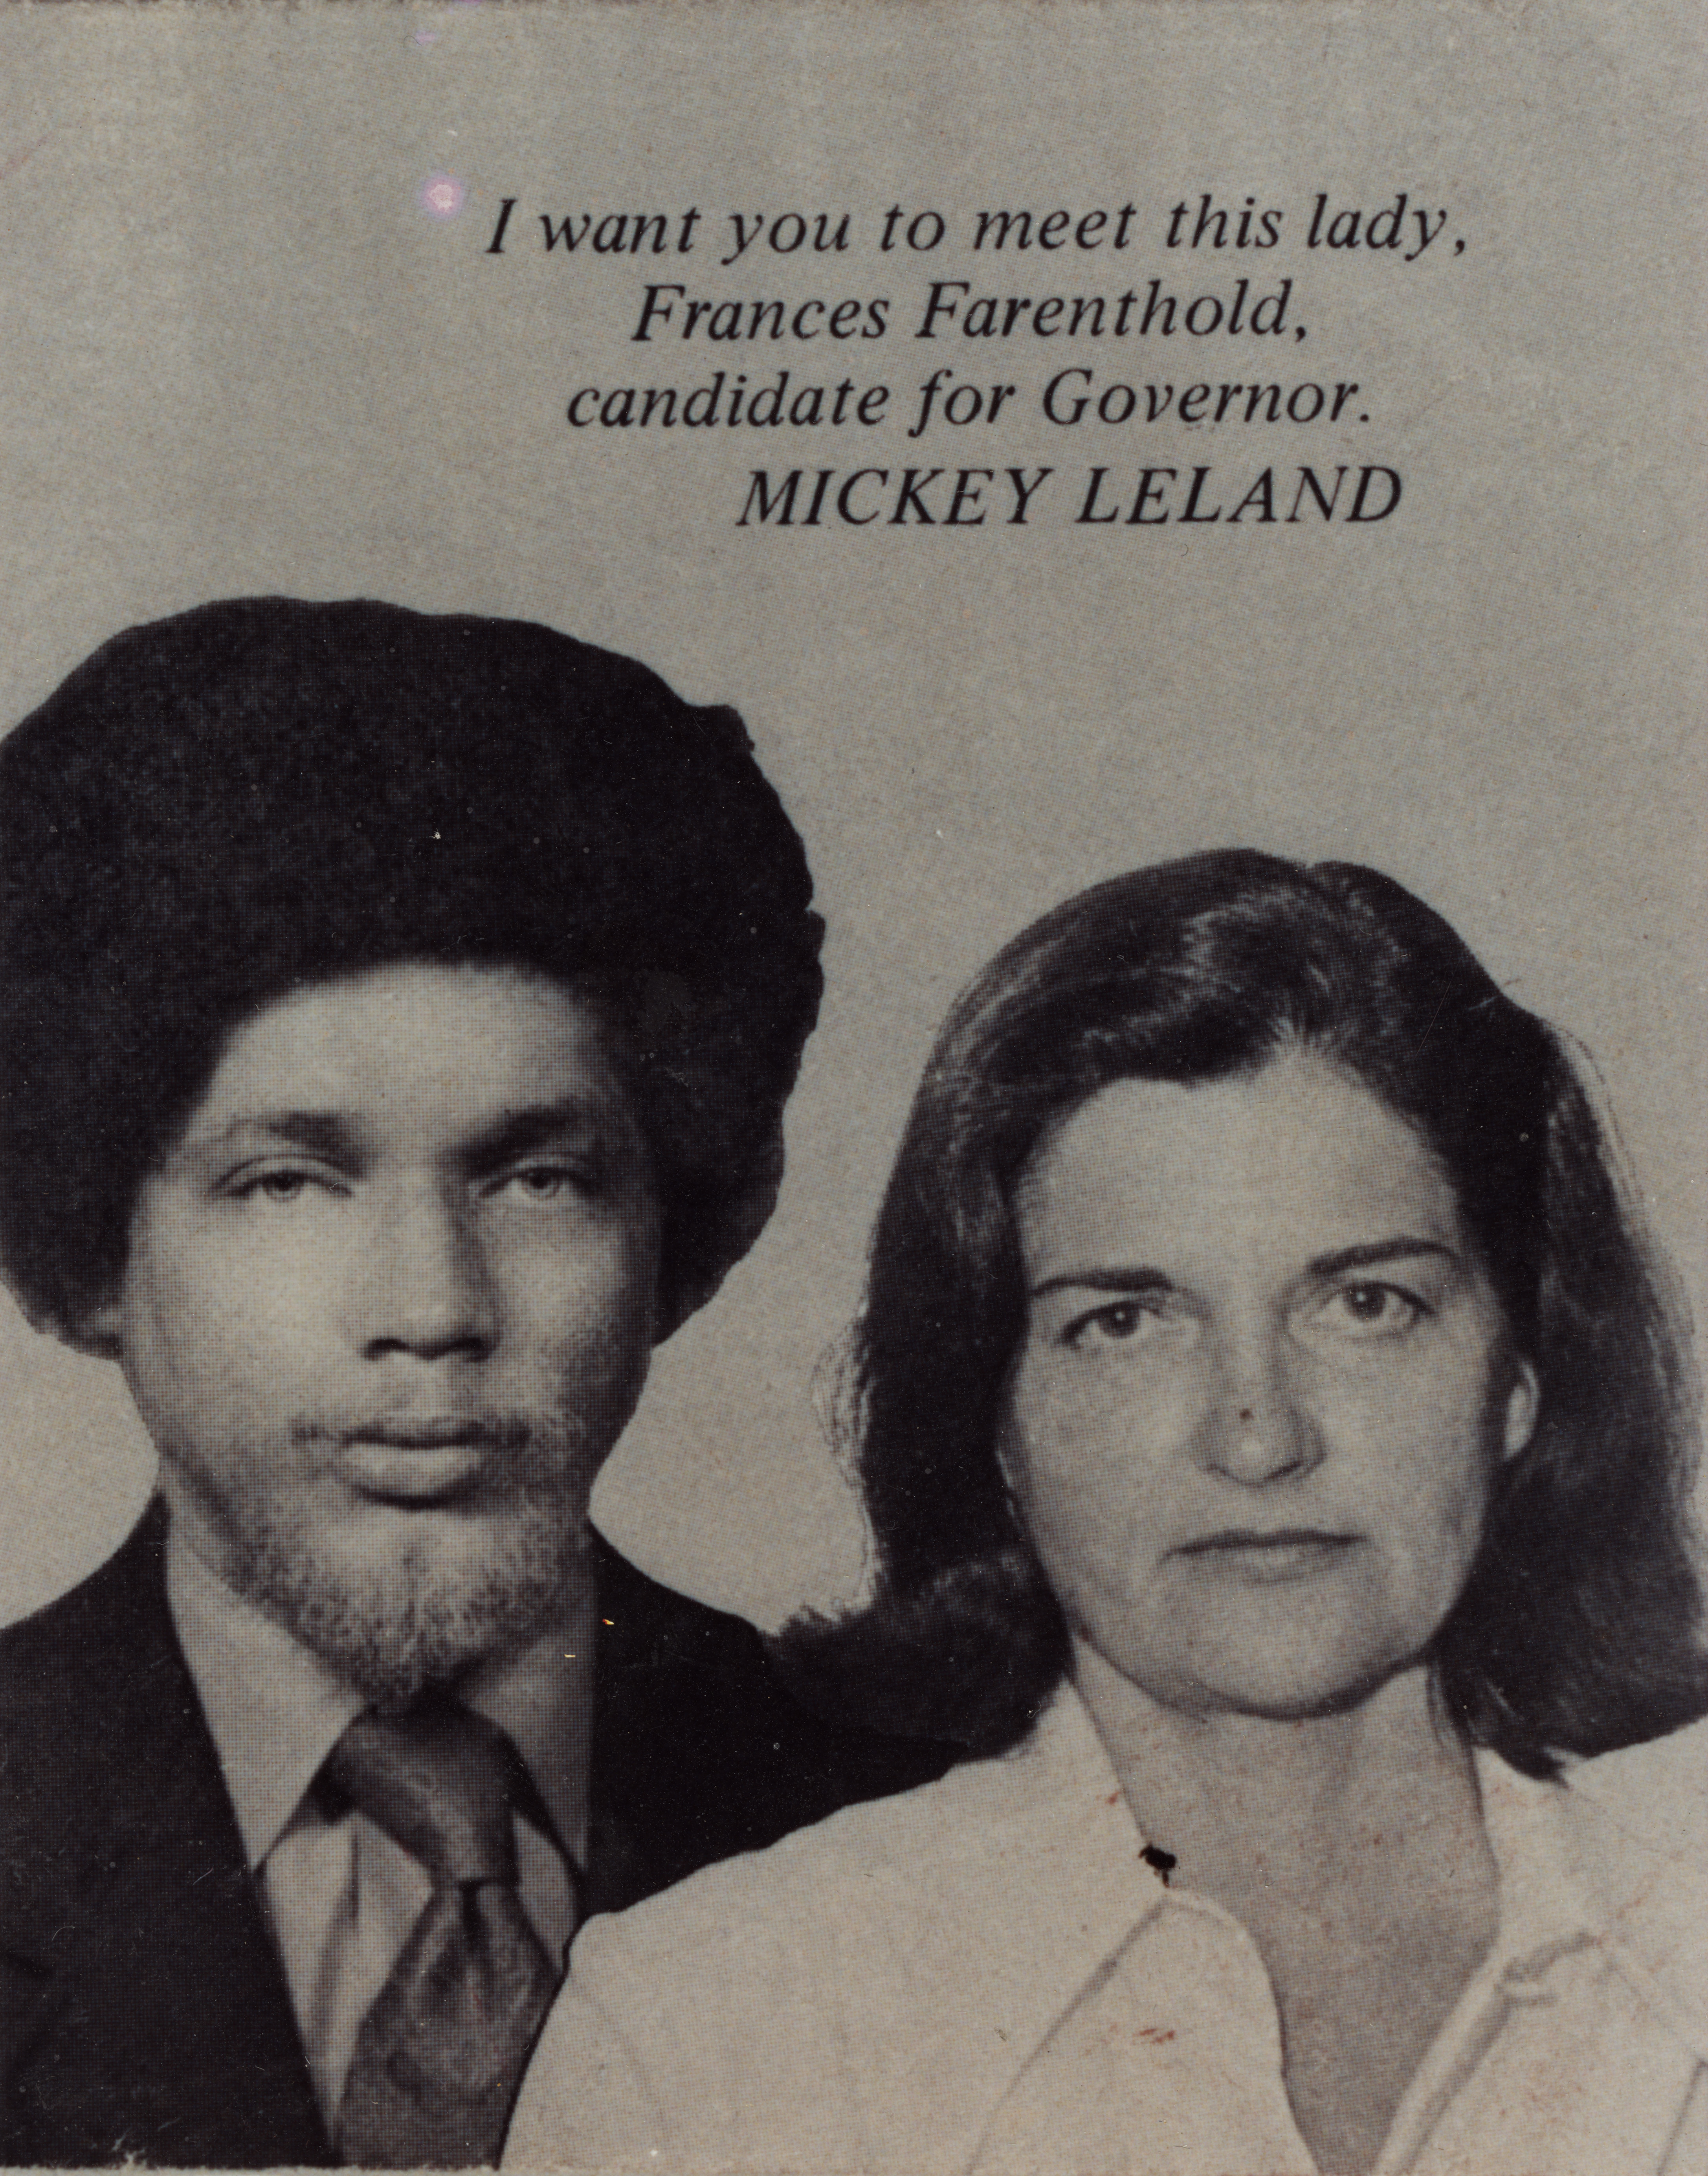 Campaign Photograph of Frances Tarlton Farenthold and Mickey Leland